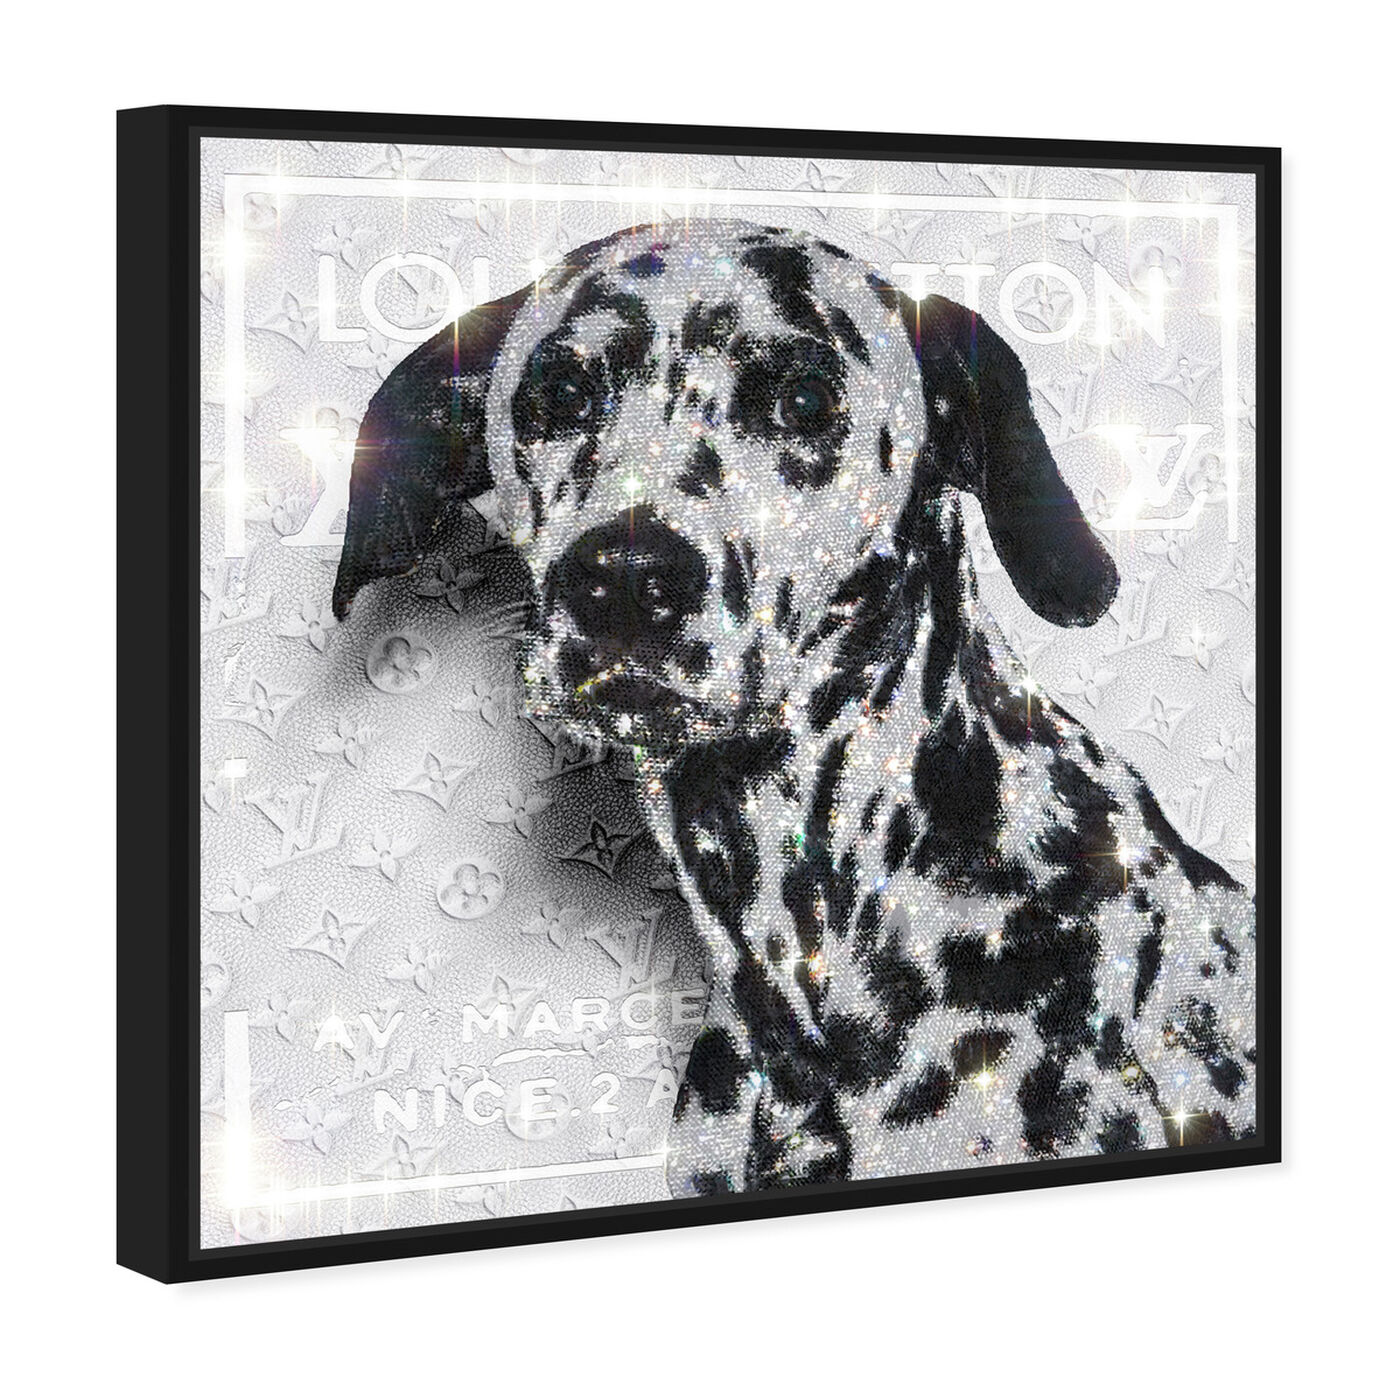 Angled view of Off Dalmatian featuring fashion and glam and lifestyle art.